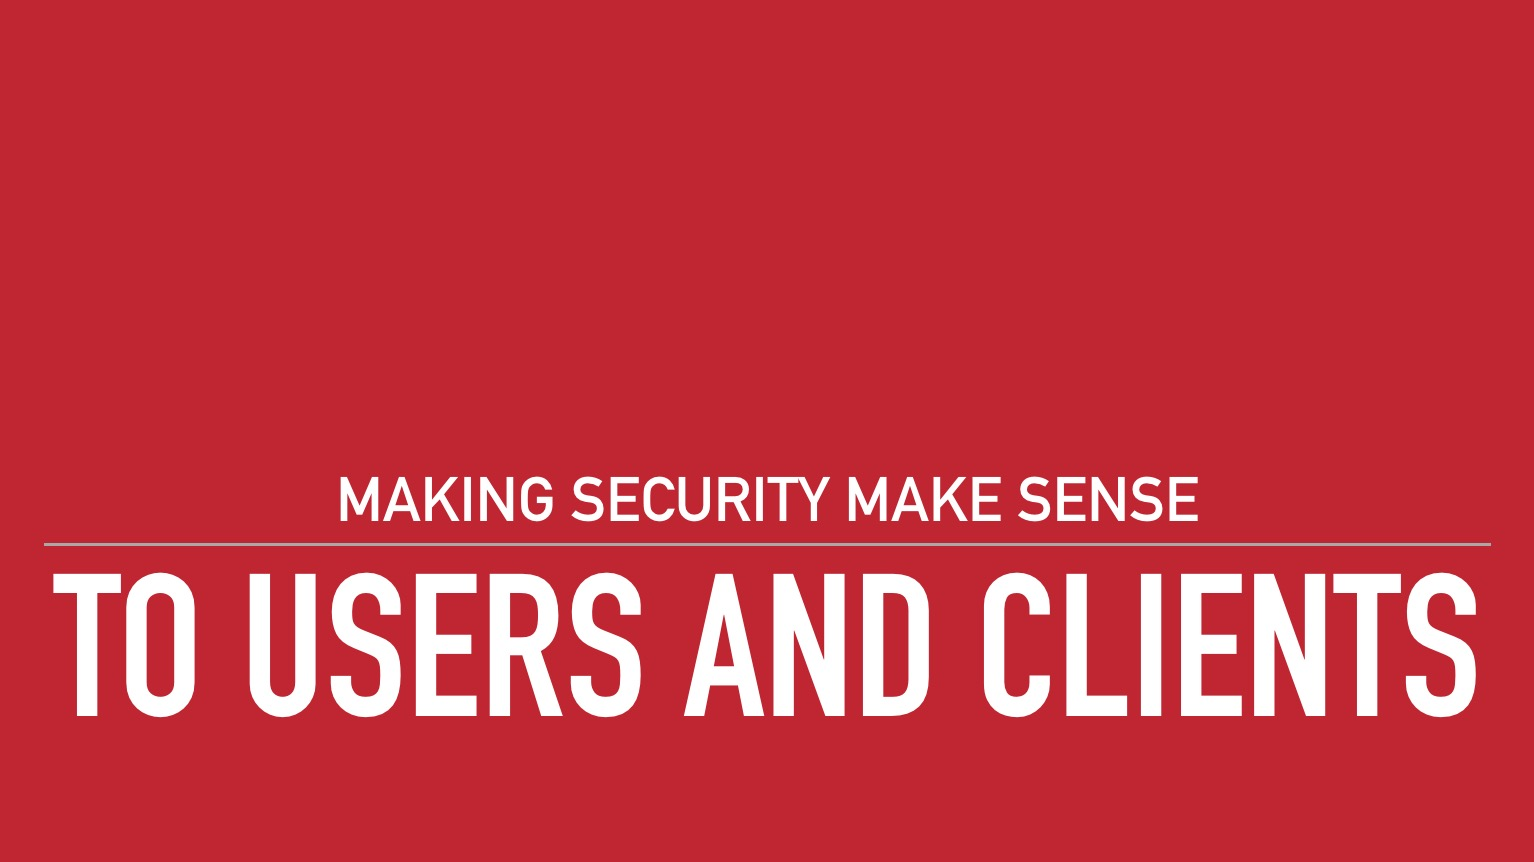 Making Security Make Sense to Clients Series